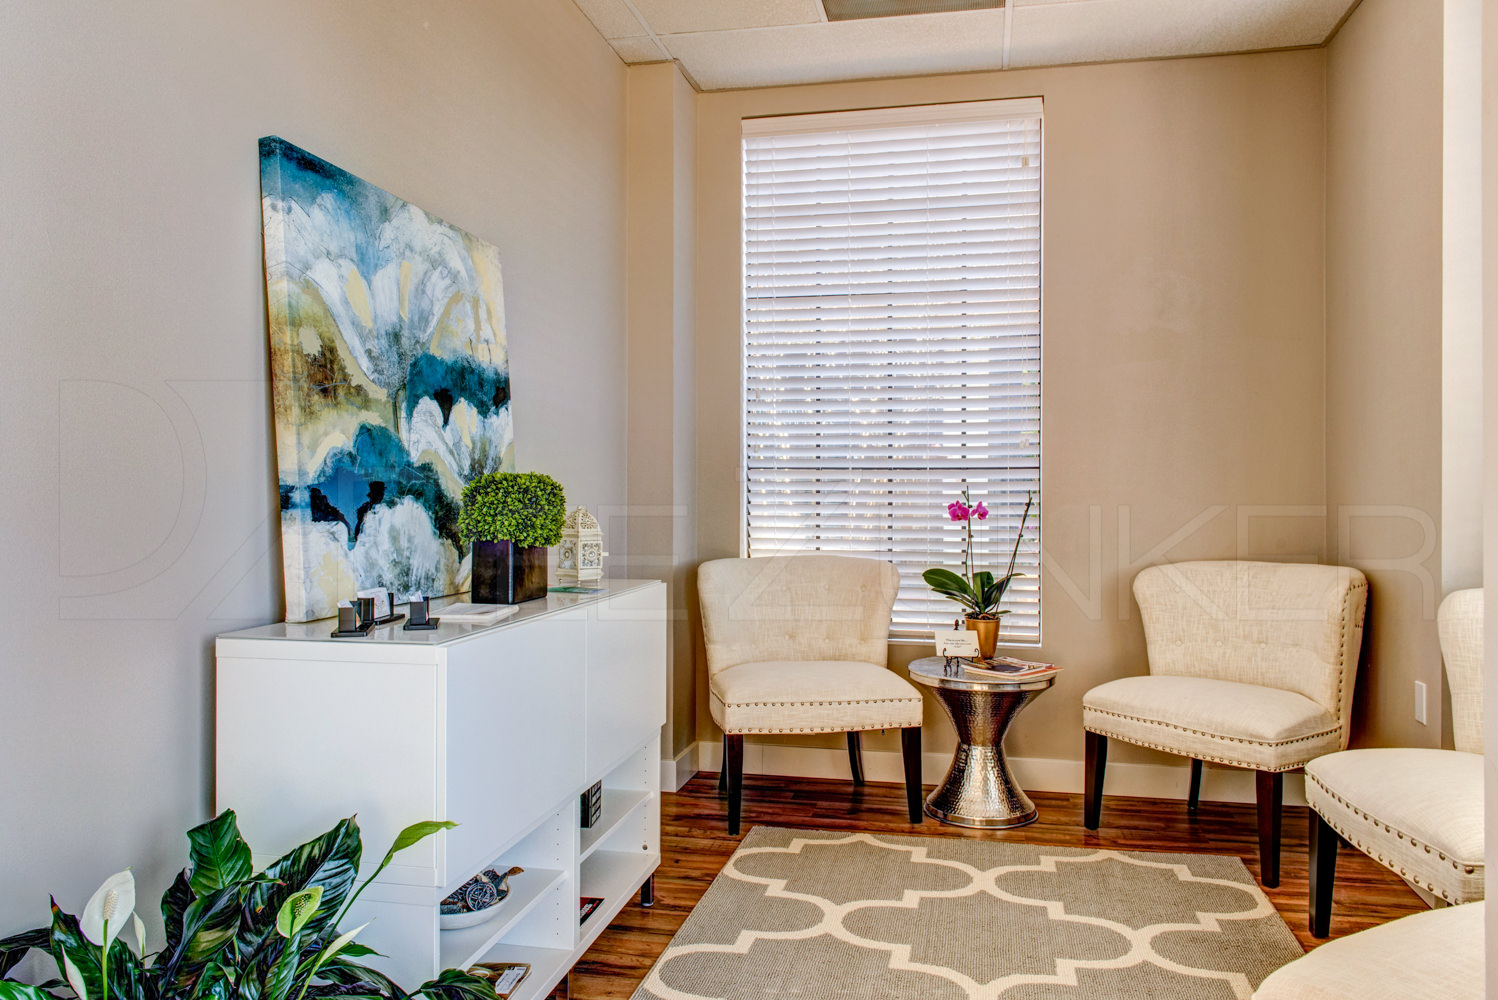 The Restorative Cetner for Body, Mind, and Spirit provides quality Counseling, Psychotherapy, and Mental Health services.   Restorative-Center-003.jpg  Houston Commercial Photographer Dee Zunker